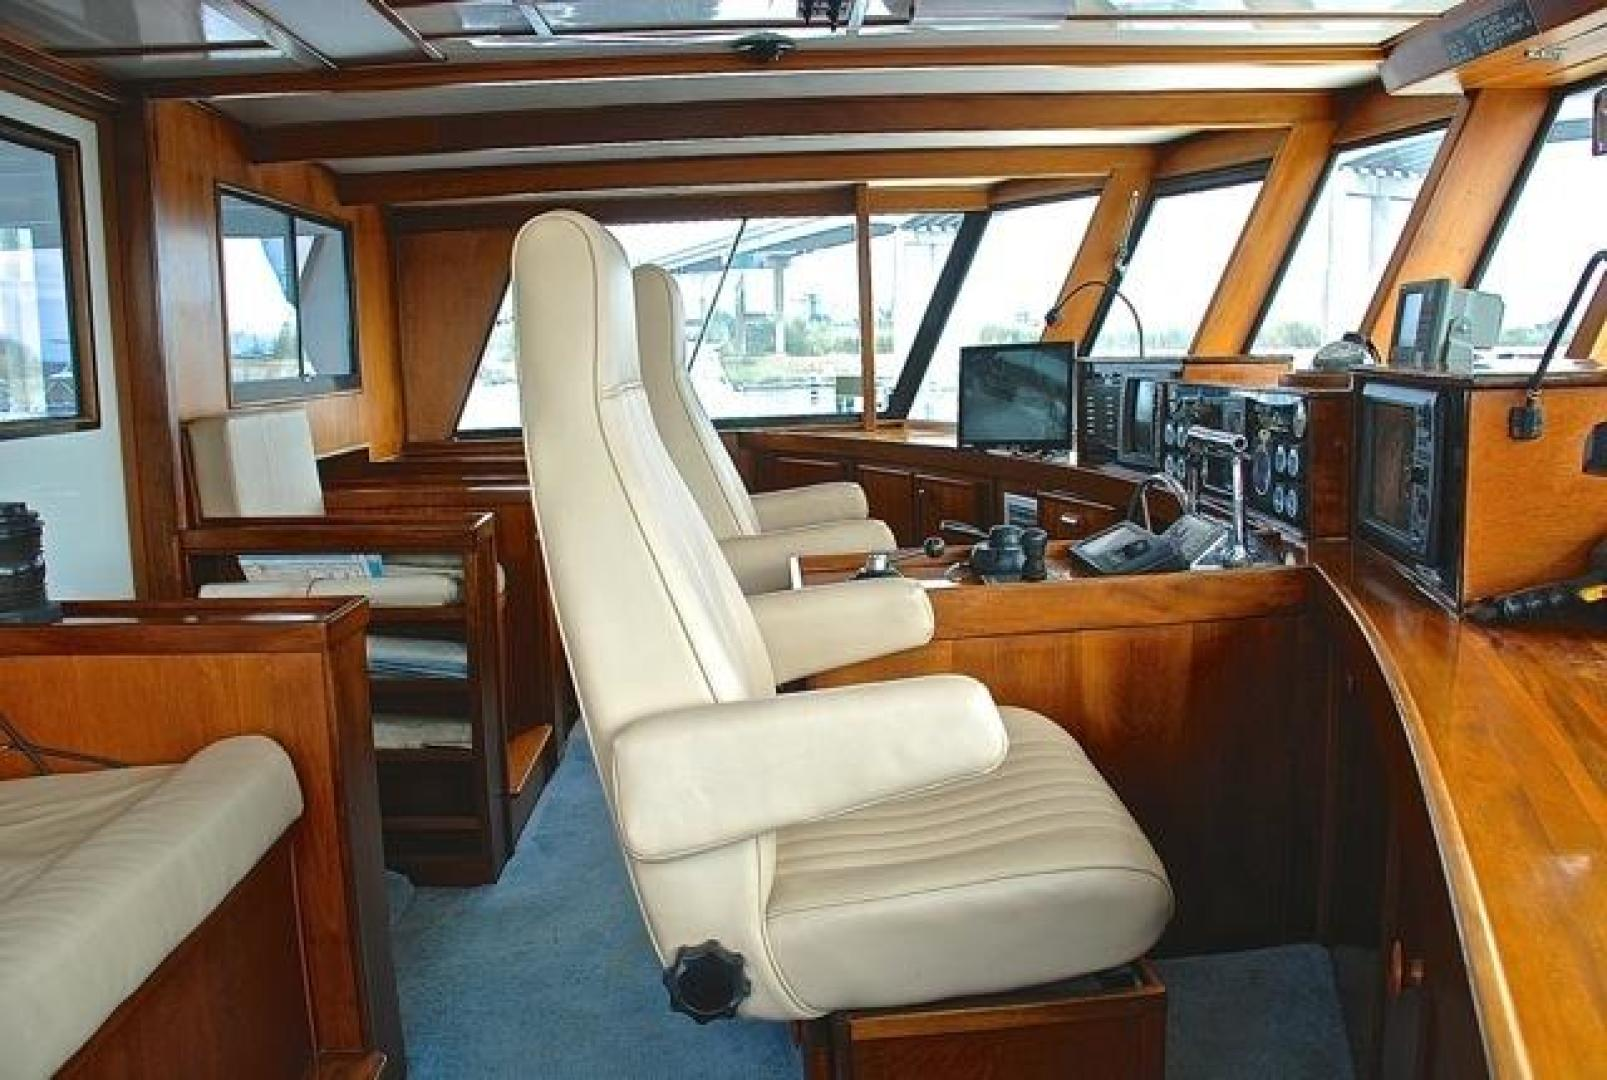 Infinity-Cockpit Motor Yacht 2001-Dont Matter Houston-Texas-United States-Pilothouse Helm View 2-1005558 | Thumbnail